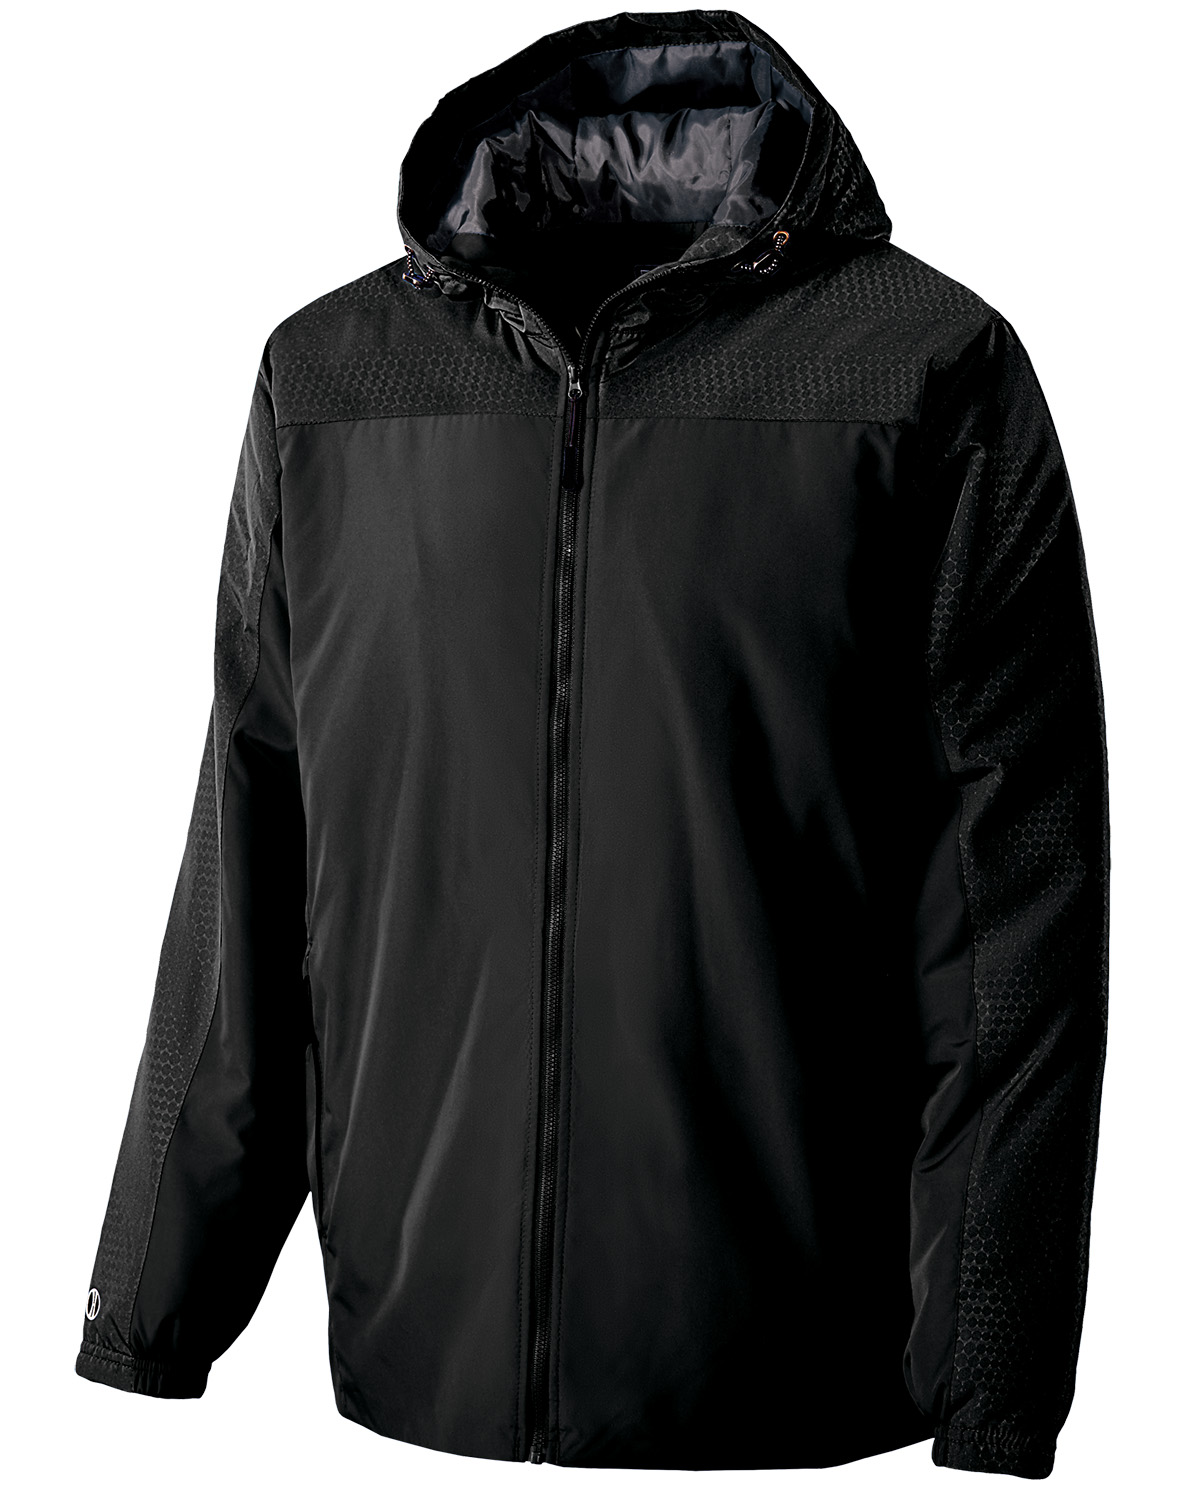 Holloway 229017 - Adult Polyester Full Zip Bionic Hooded Jacket